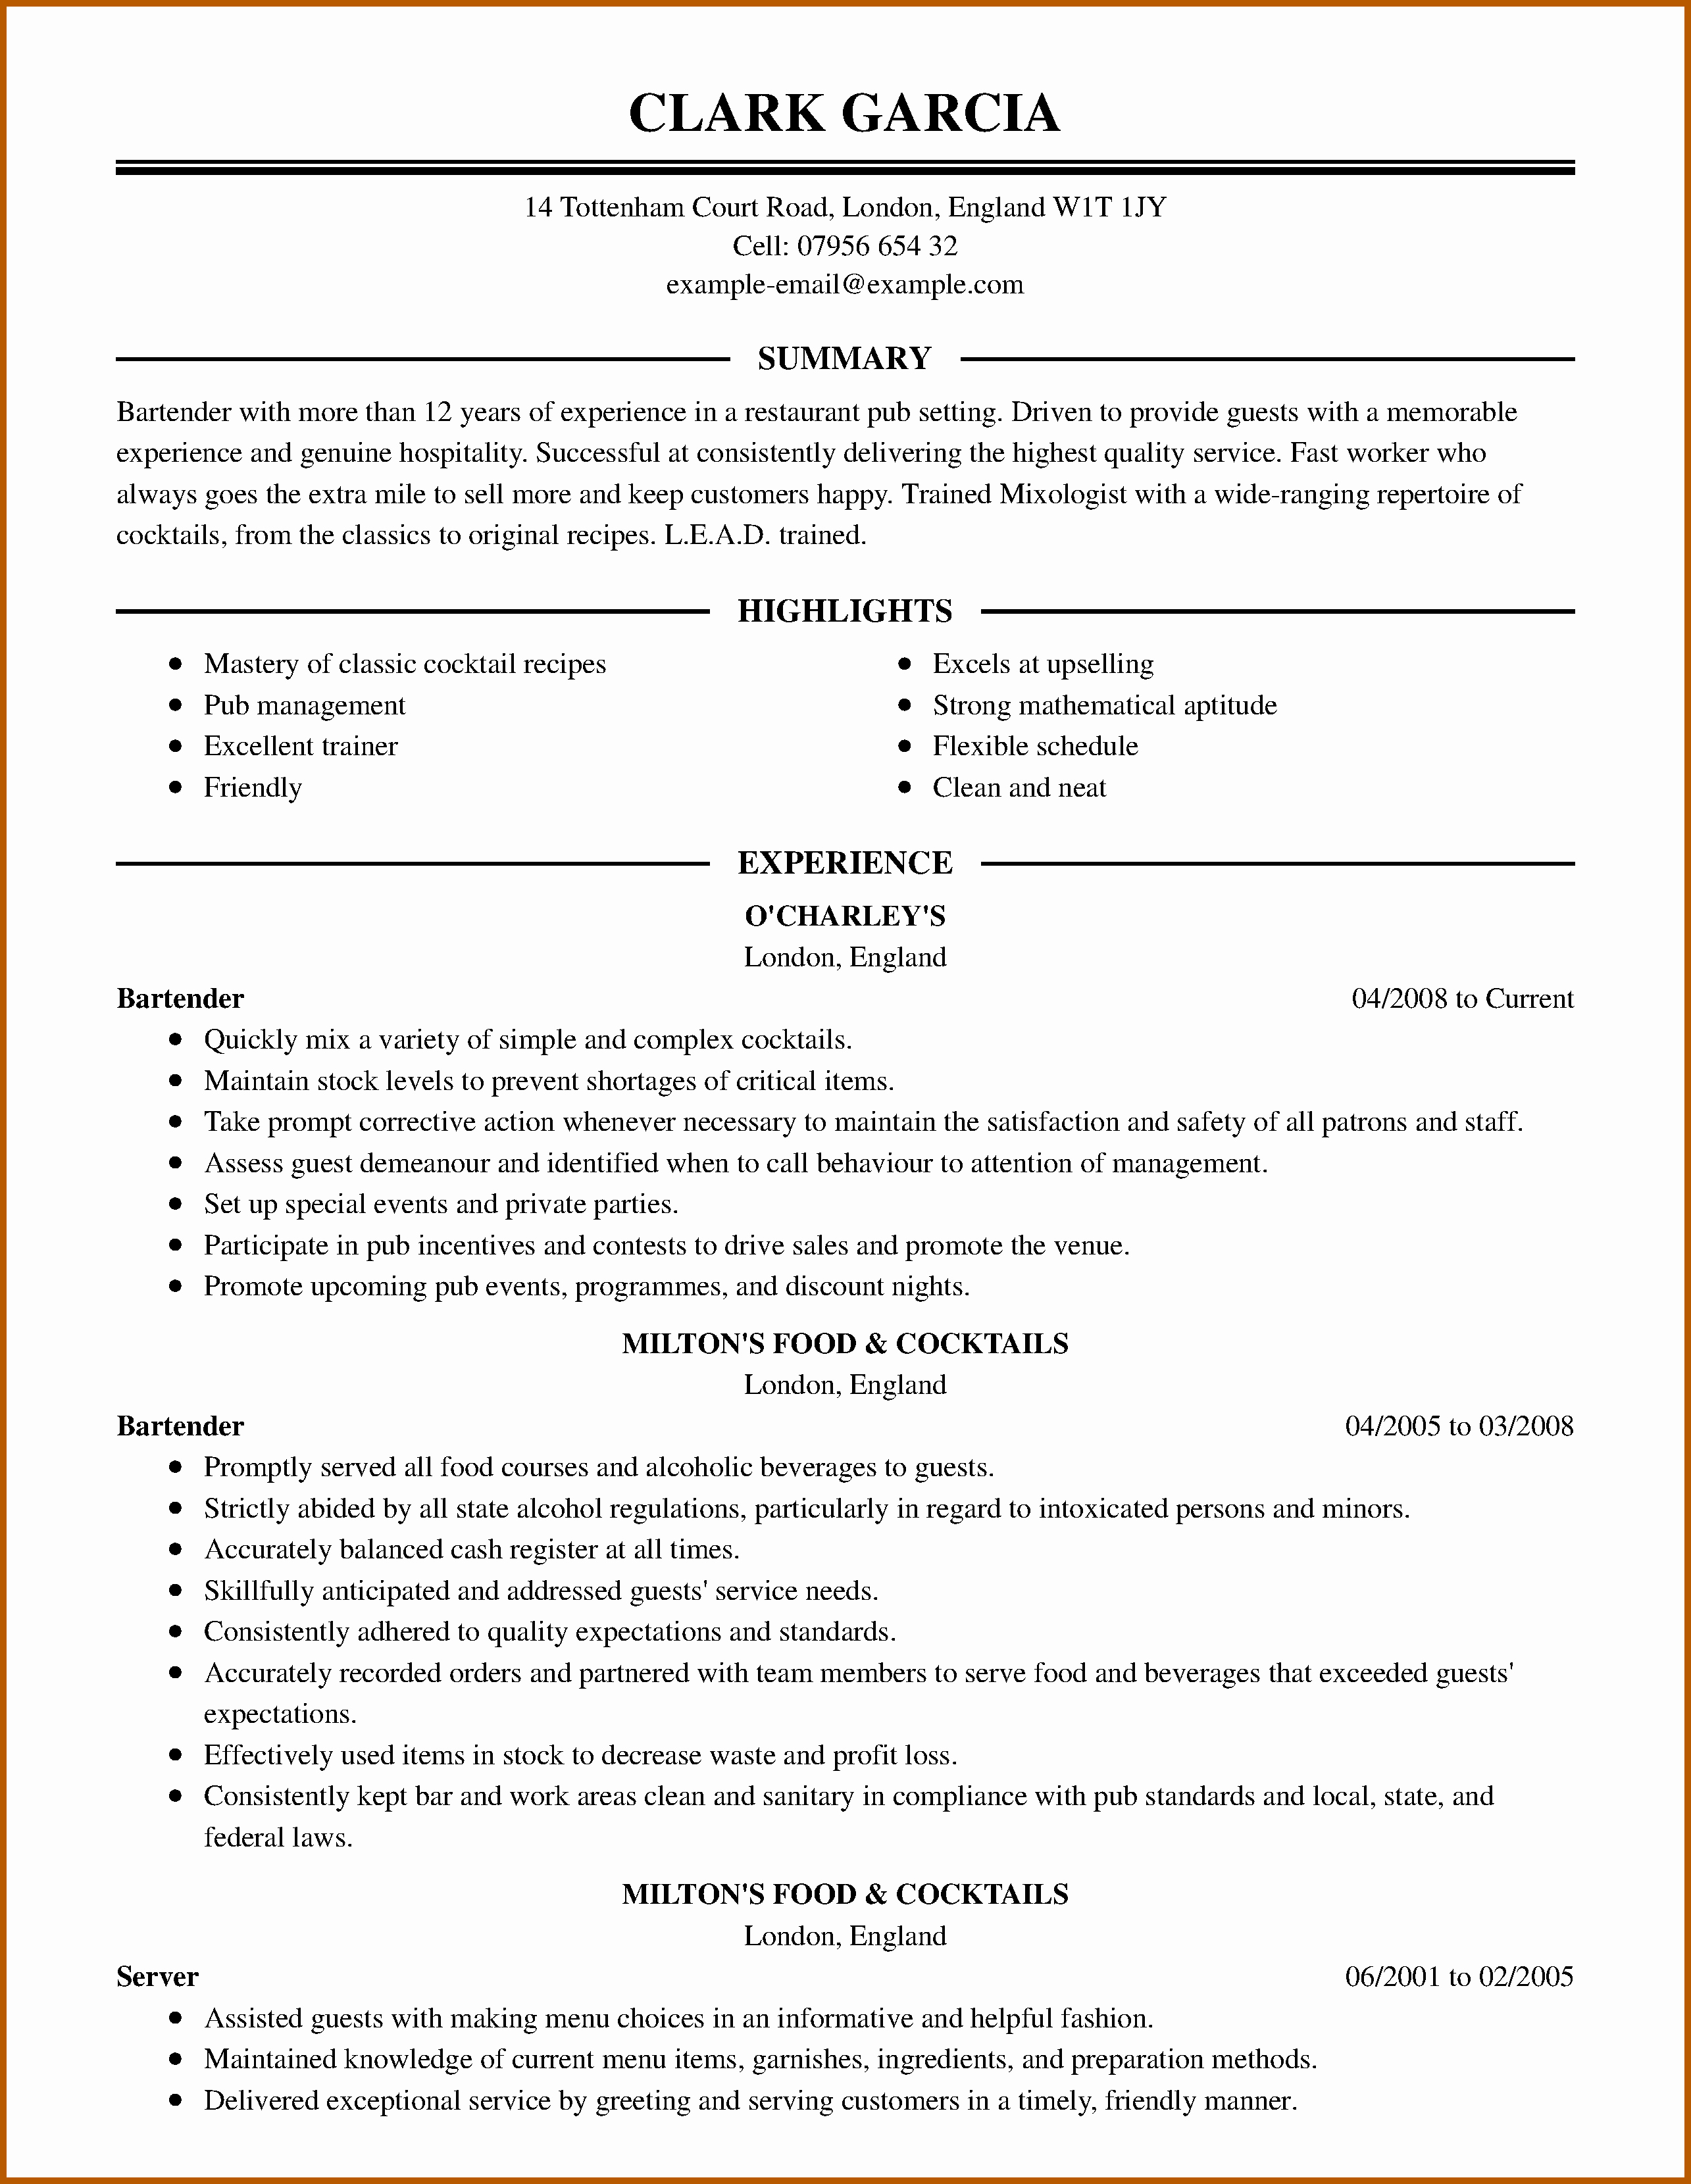 6 7 Resumes that You Hired Samples